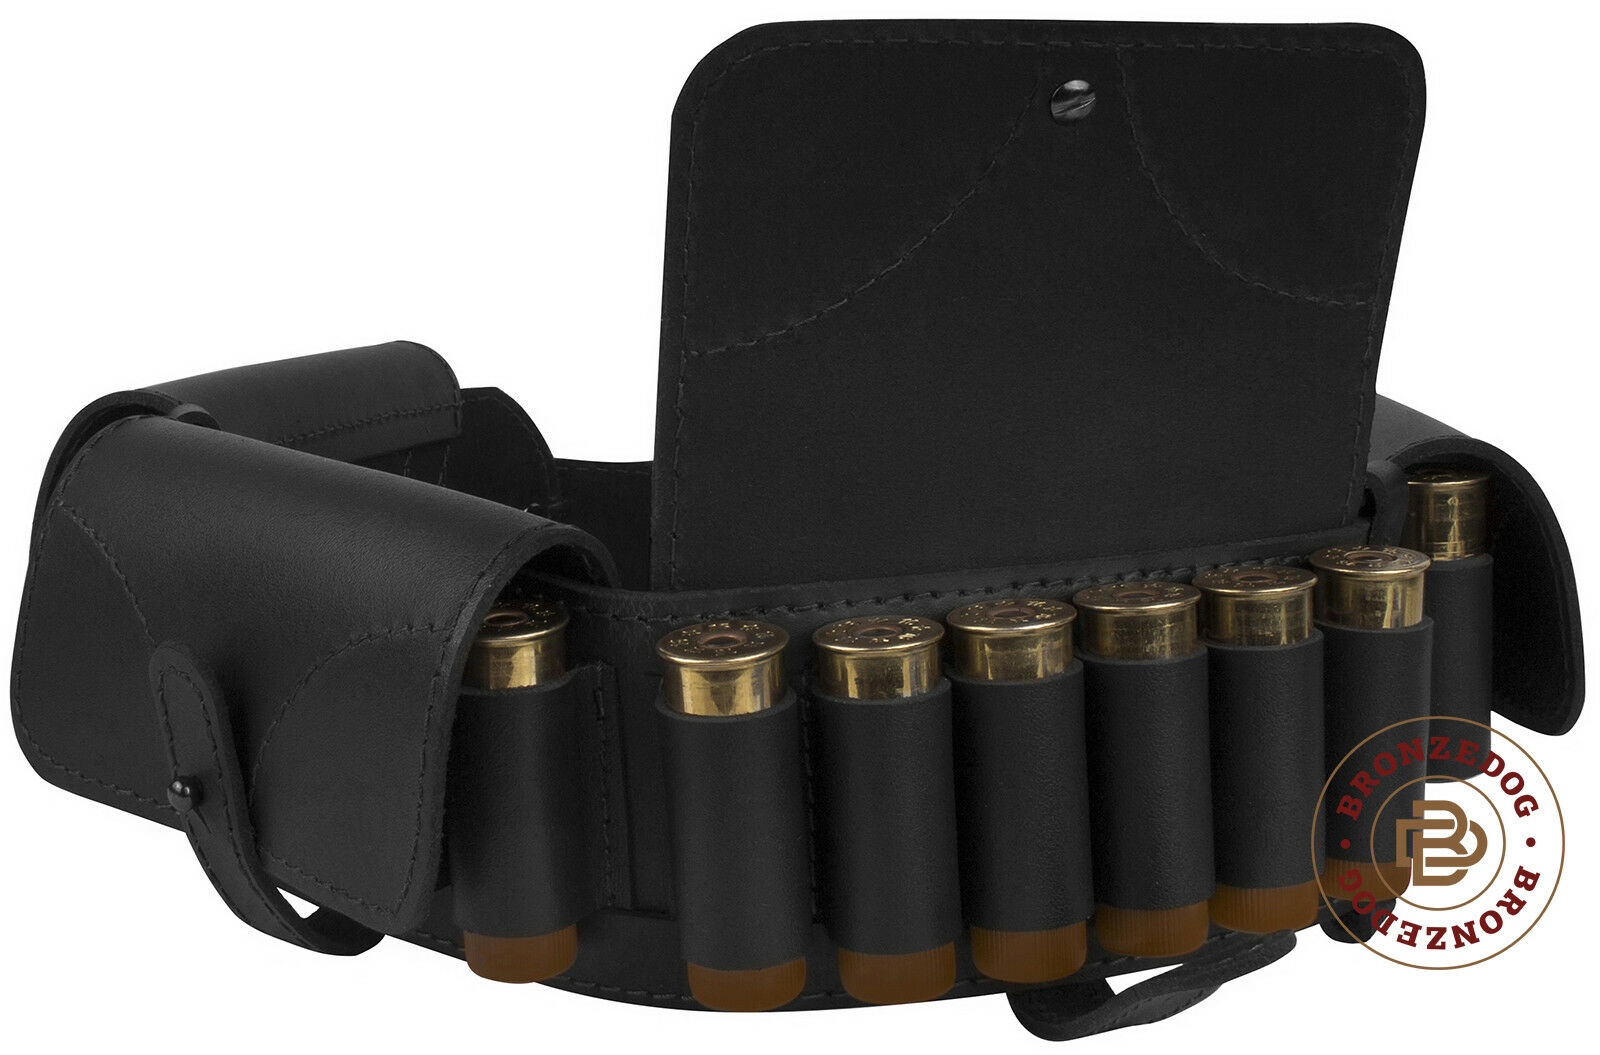 Leder Cartridge Belt Belt Belt Holder 24 x 12 Ga Shotgun Shell Bandolier Bandoleer 51d451